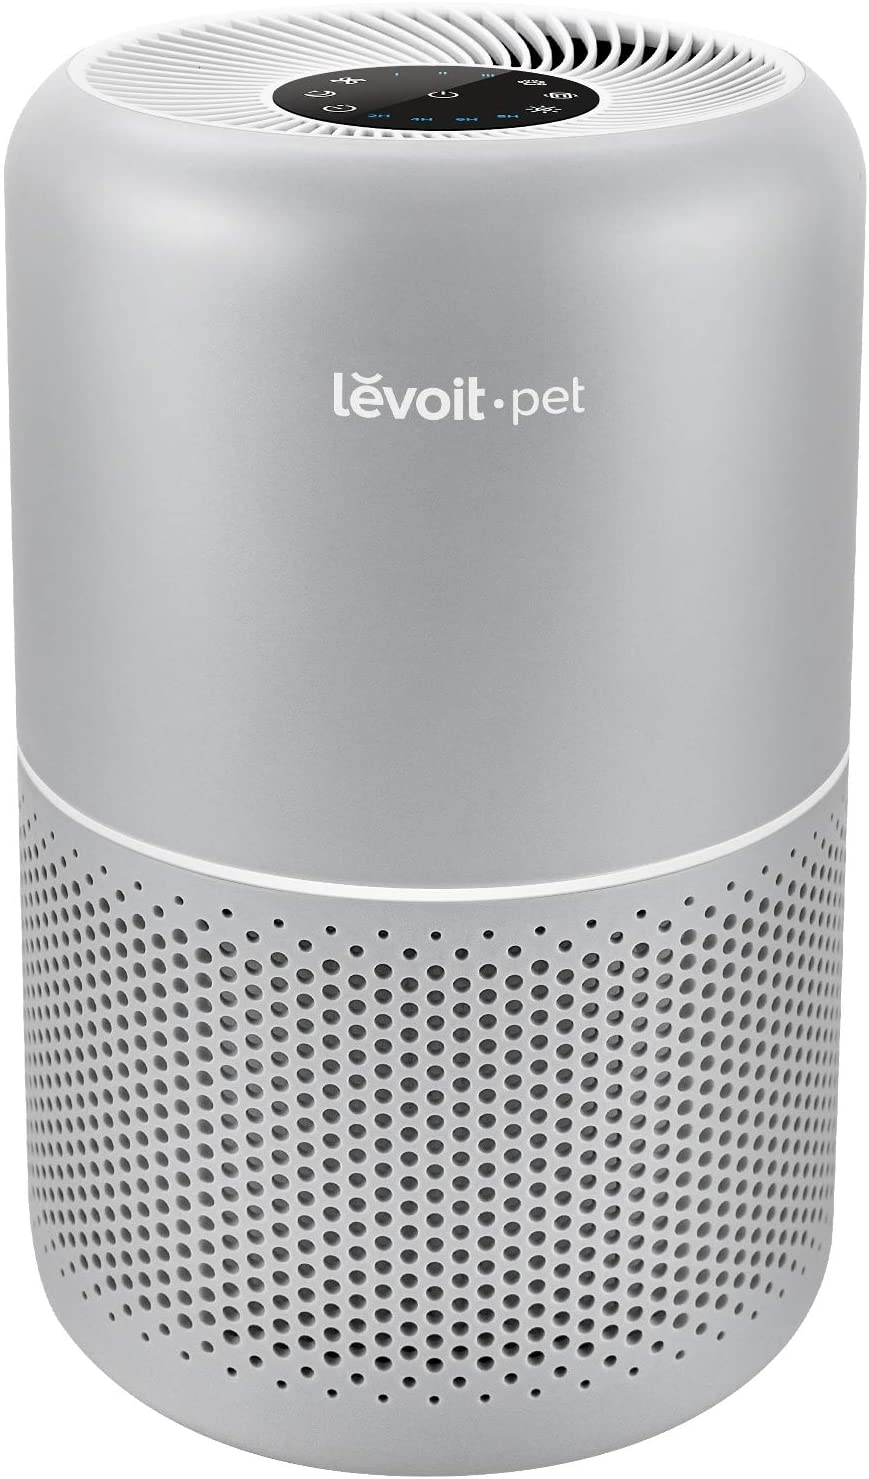 LEVOIT 24db Filtration System True HEPA Filter Air Purifier